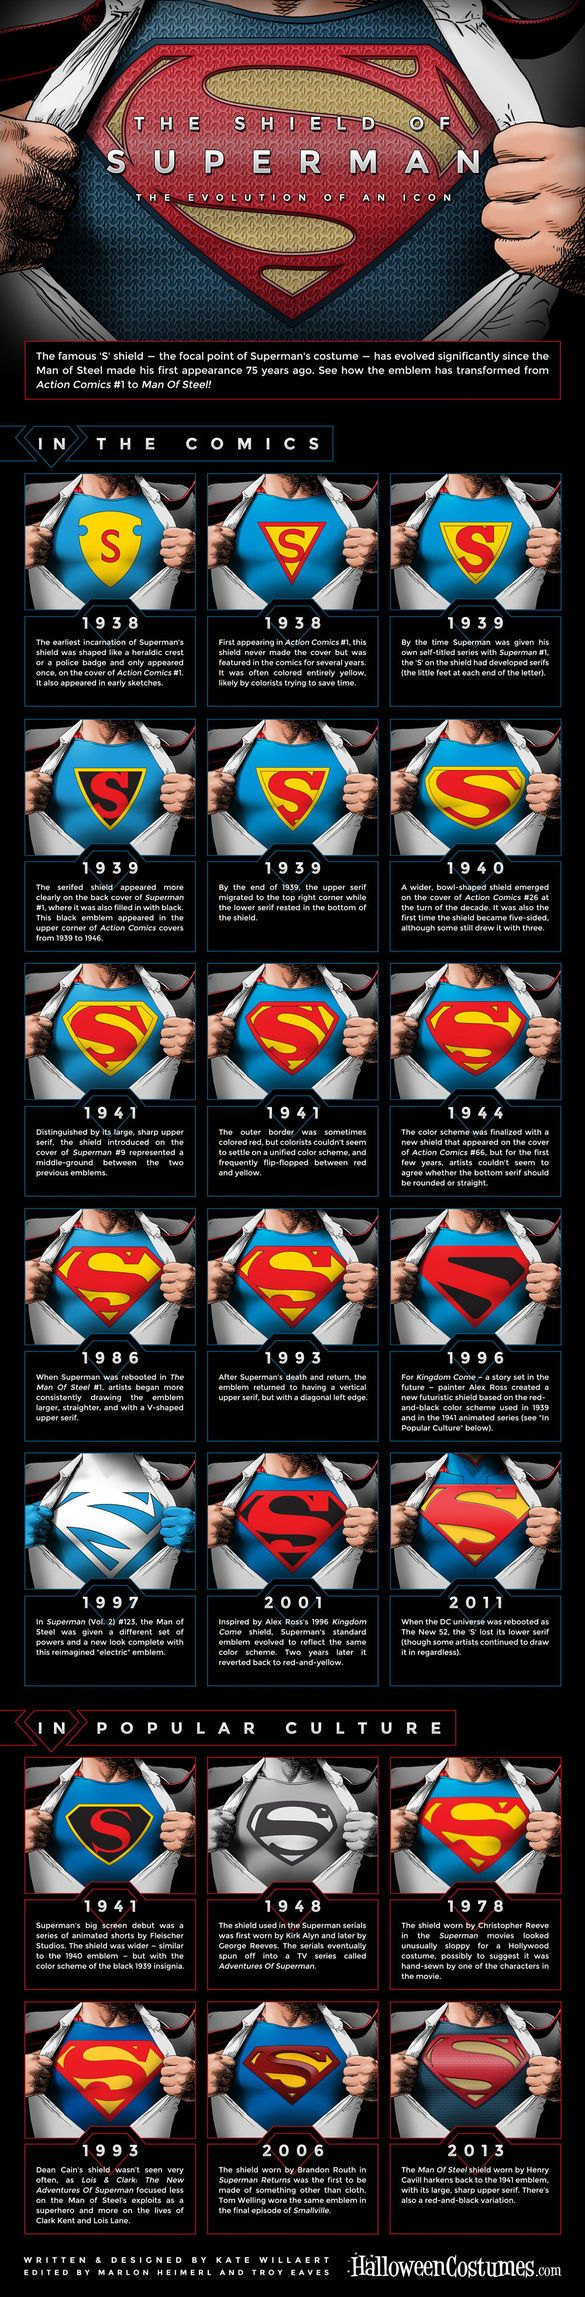 Infographic: The Evolution of the Superman Logo From 1938 To Now | Co.Create: Creativity \ Culture \ Commerce